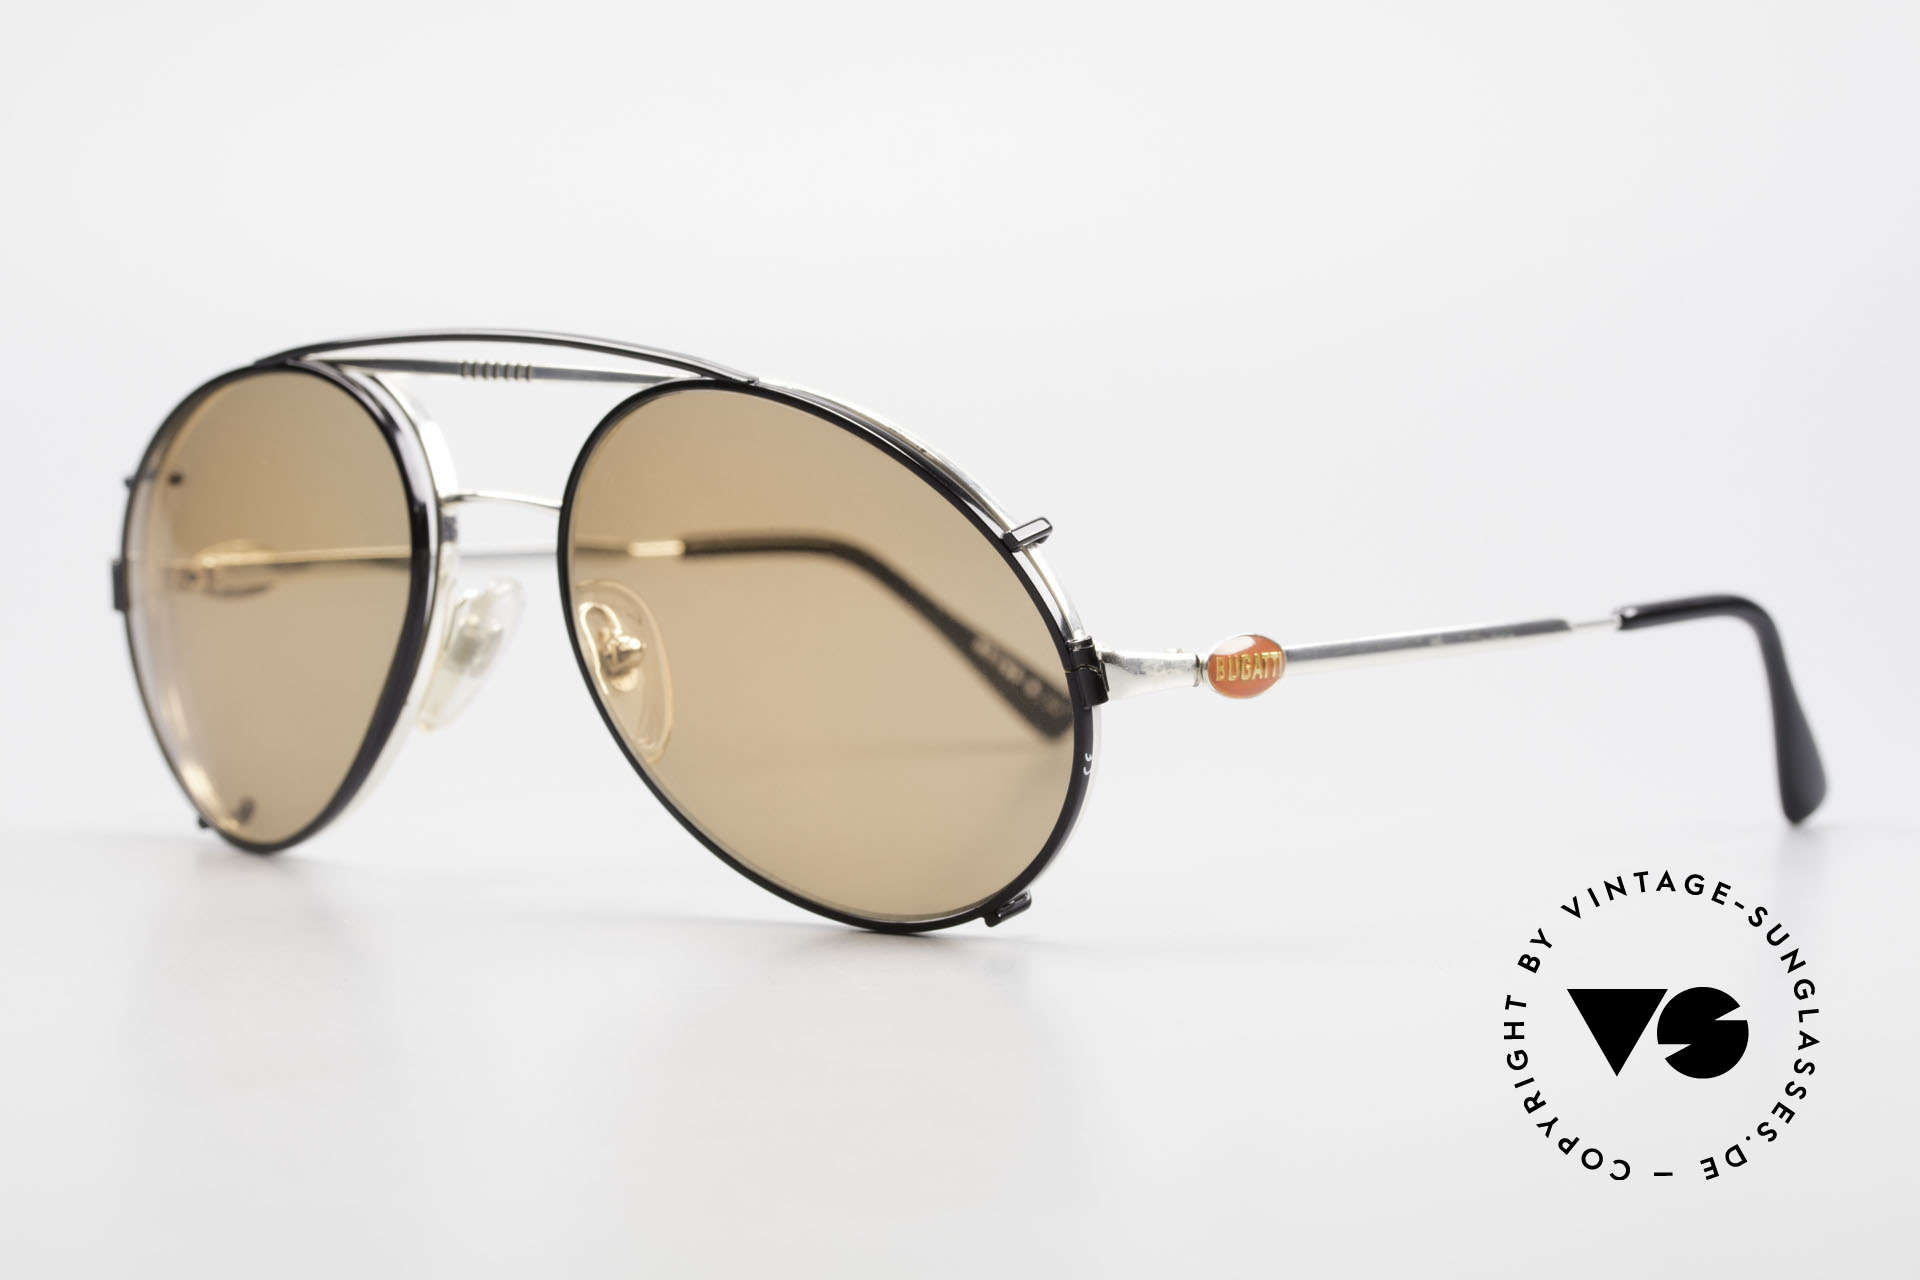 Bugatti 65996 Vintage Frame With Clip On, eyeglass-frame with practical clip (sun lenses), Made for Men